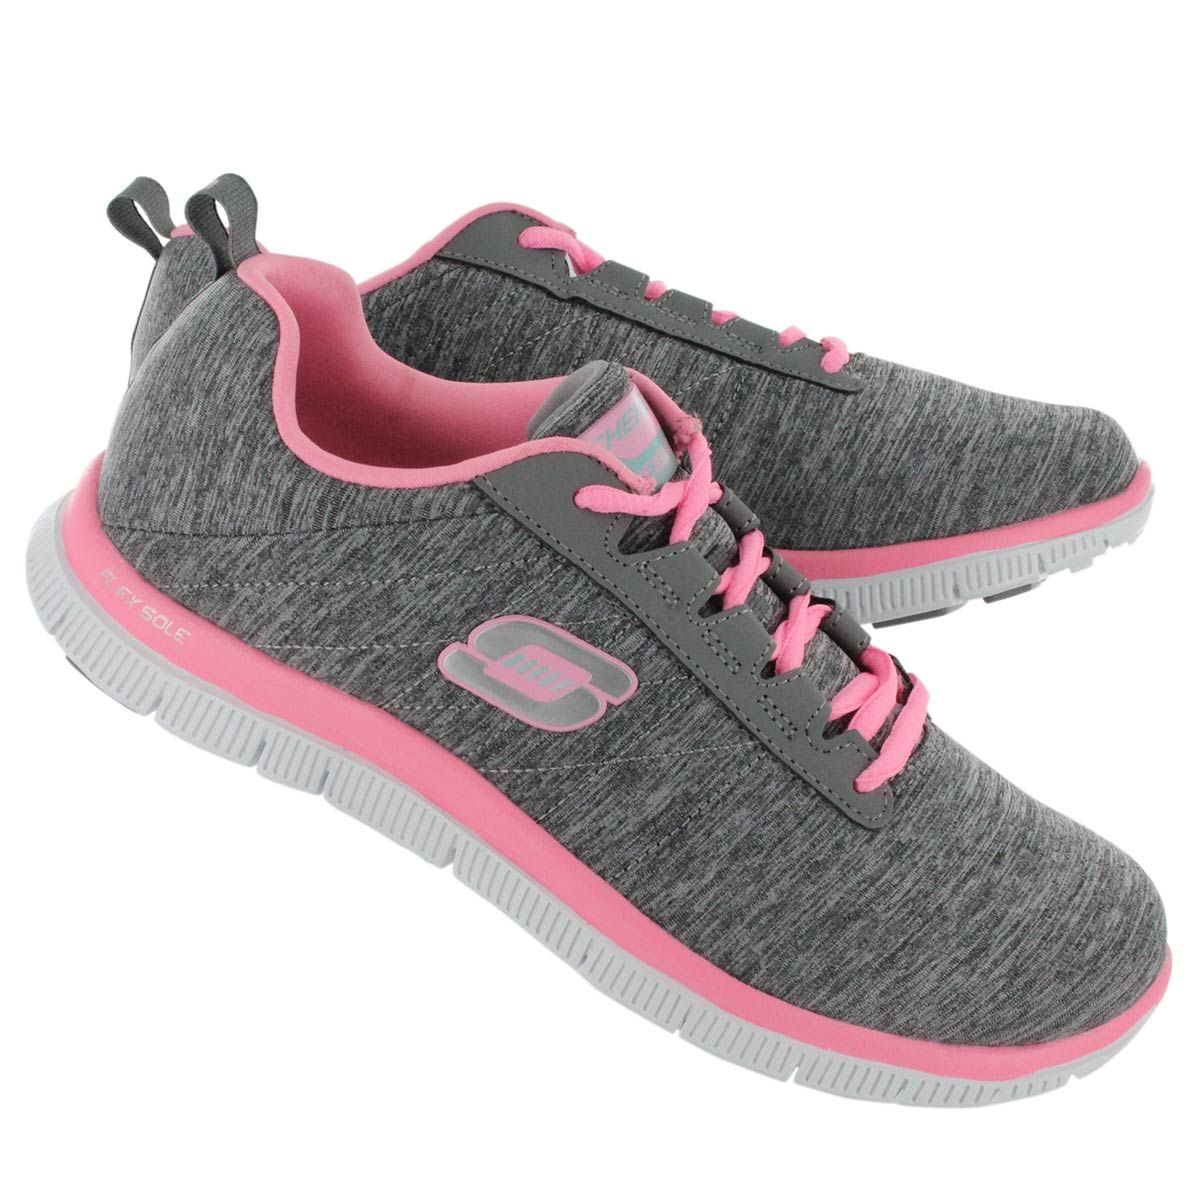 Skechers Women's FLEX APPEAL NEXT GENERATION sneakers 11883 GYPK